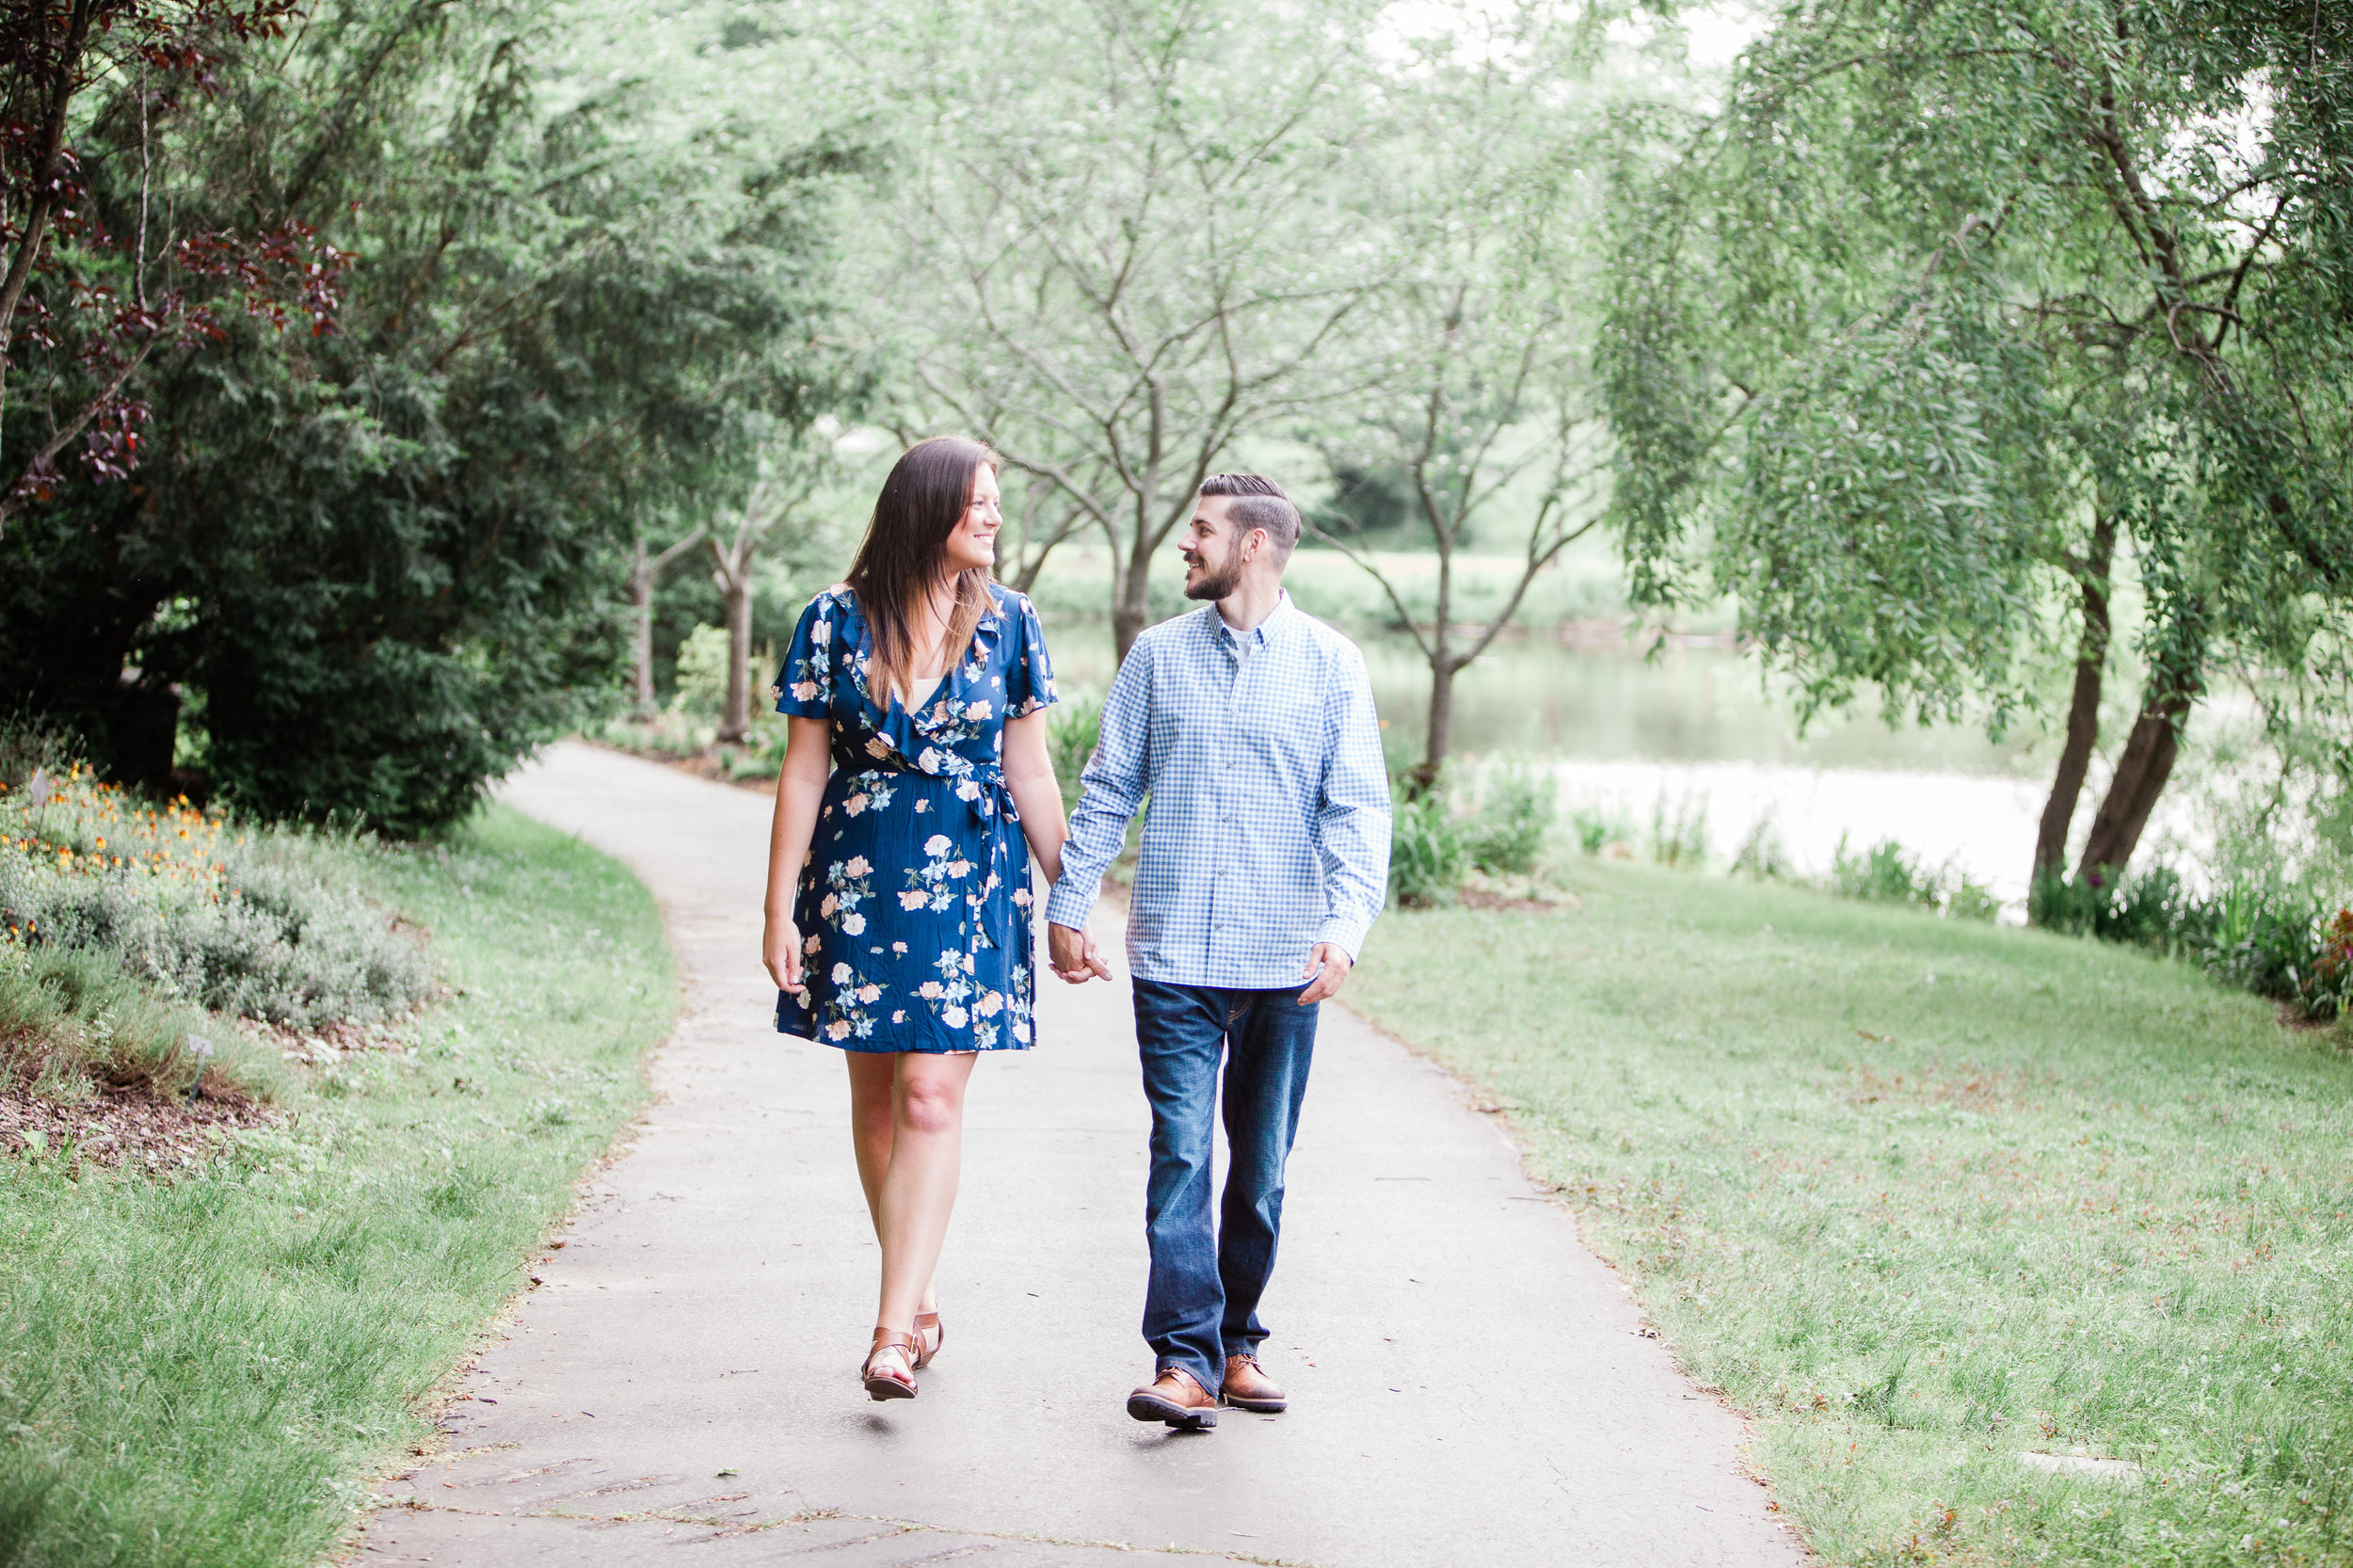 meadowlark_botanical_gardens_engagements-3492.jpg